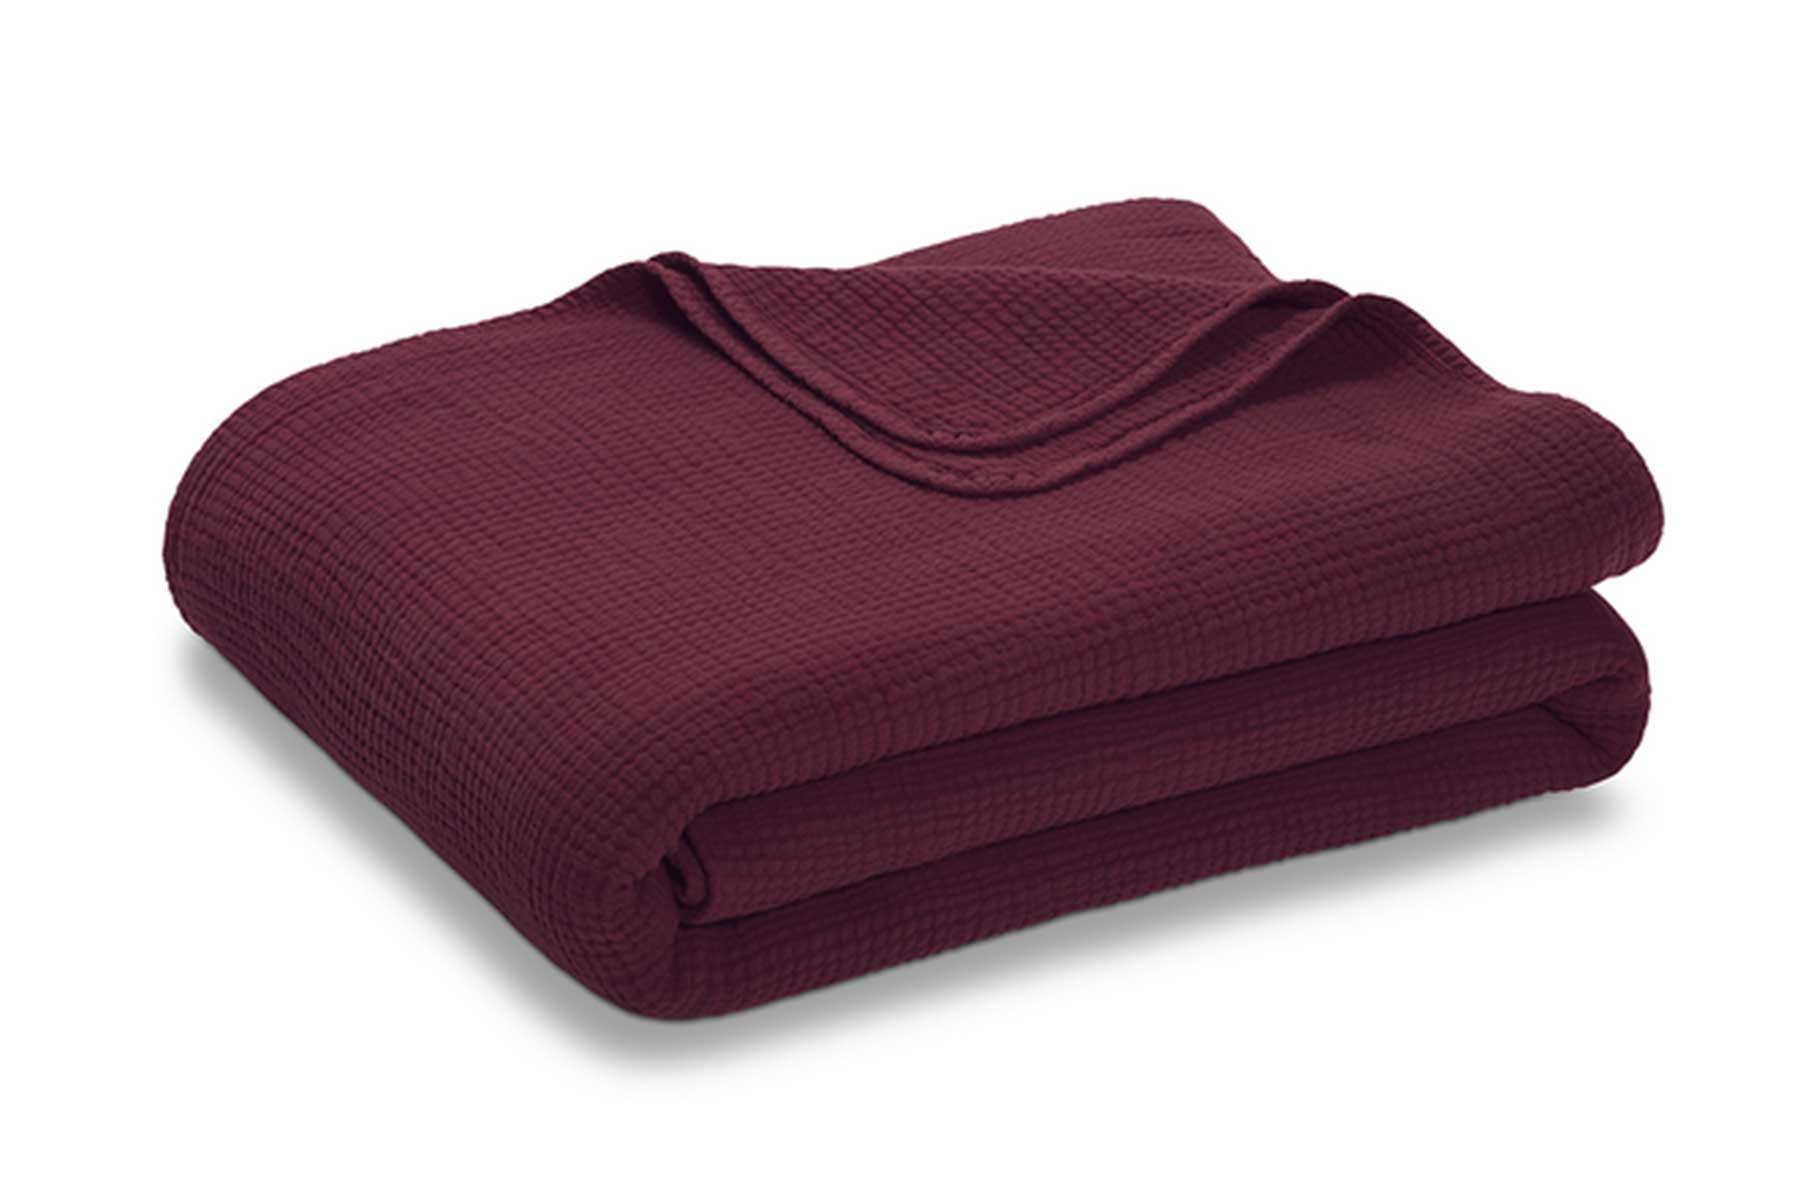 RiLEY Four Layer Coverlet in maroon